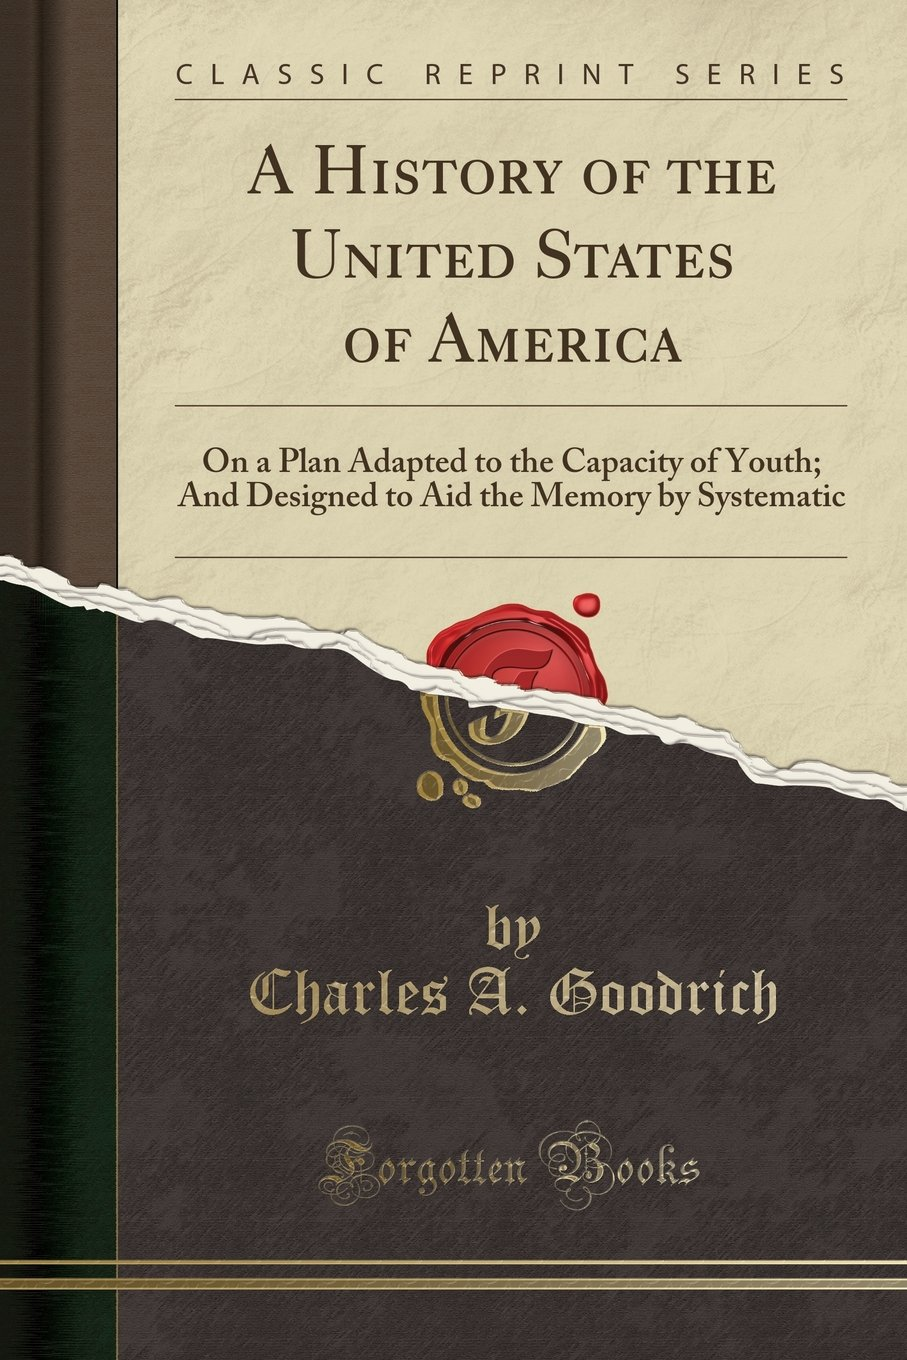 A History of the United States of America: On a Plan Adapted to the Capacity of Youth; And Designed to Aid the Memory by Systematic (Classic Reprint) pdf